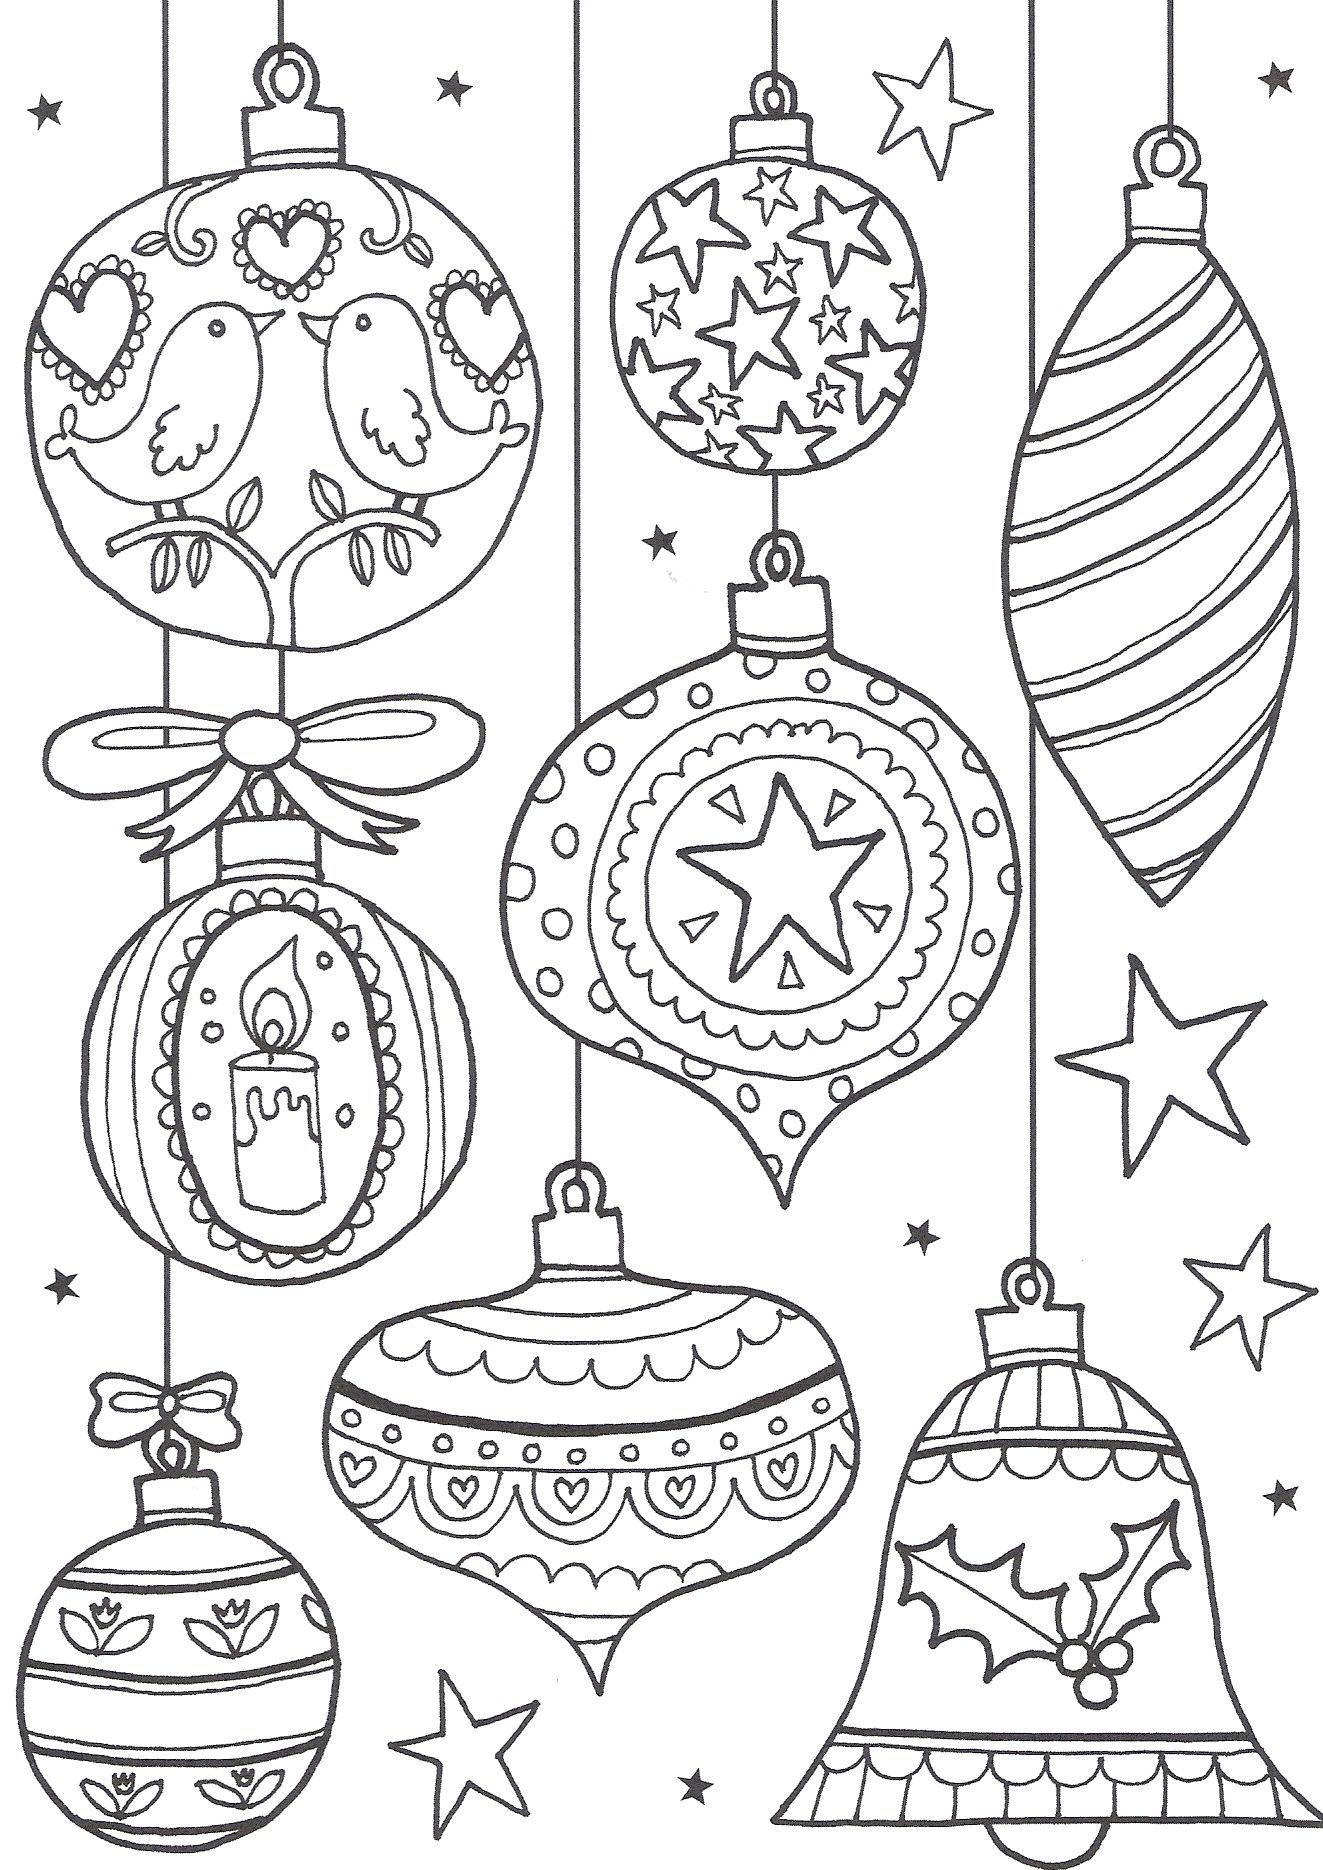 Christmas Coloring Pages For Adults Free Printable With Colouring The Ultimate Roundup